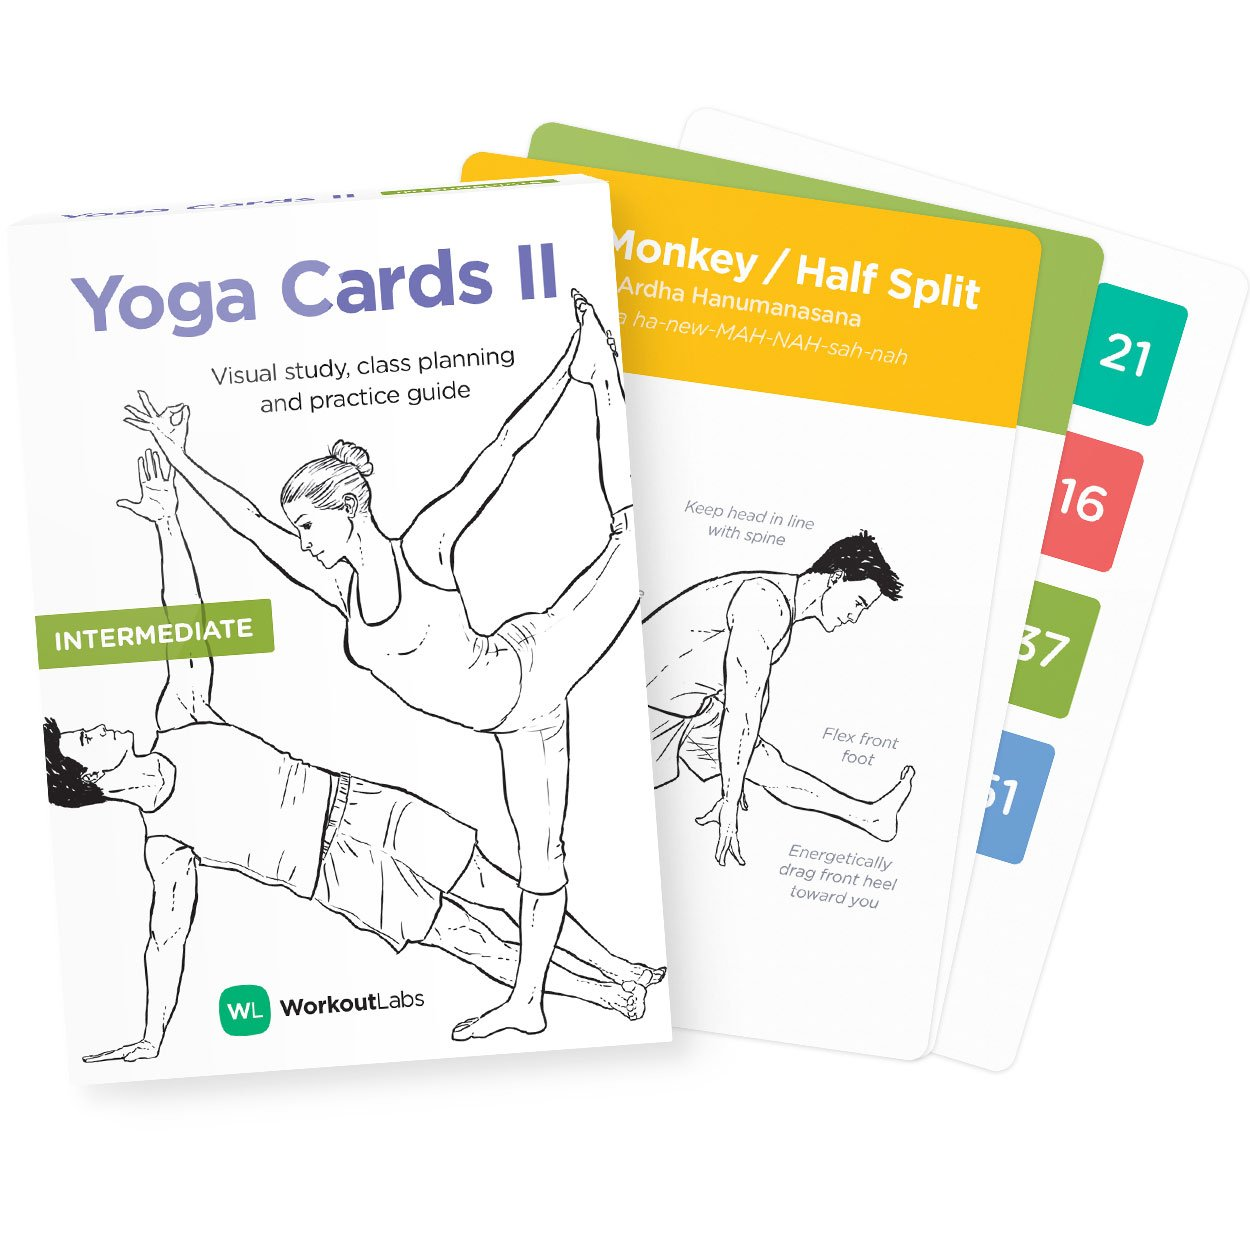 2 /· Plastic Flash Cards Deck with Sanskrit WorkoutLabs Yoga Cards II Intermediate: Premium Visual Study Class Sequencing /& Practice Guide Vol